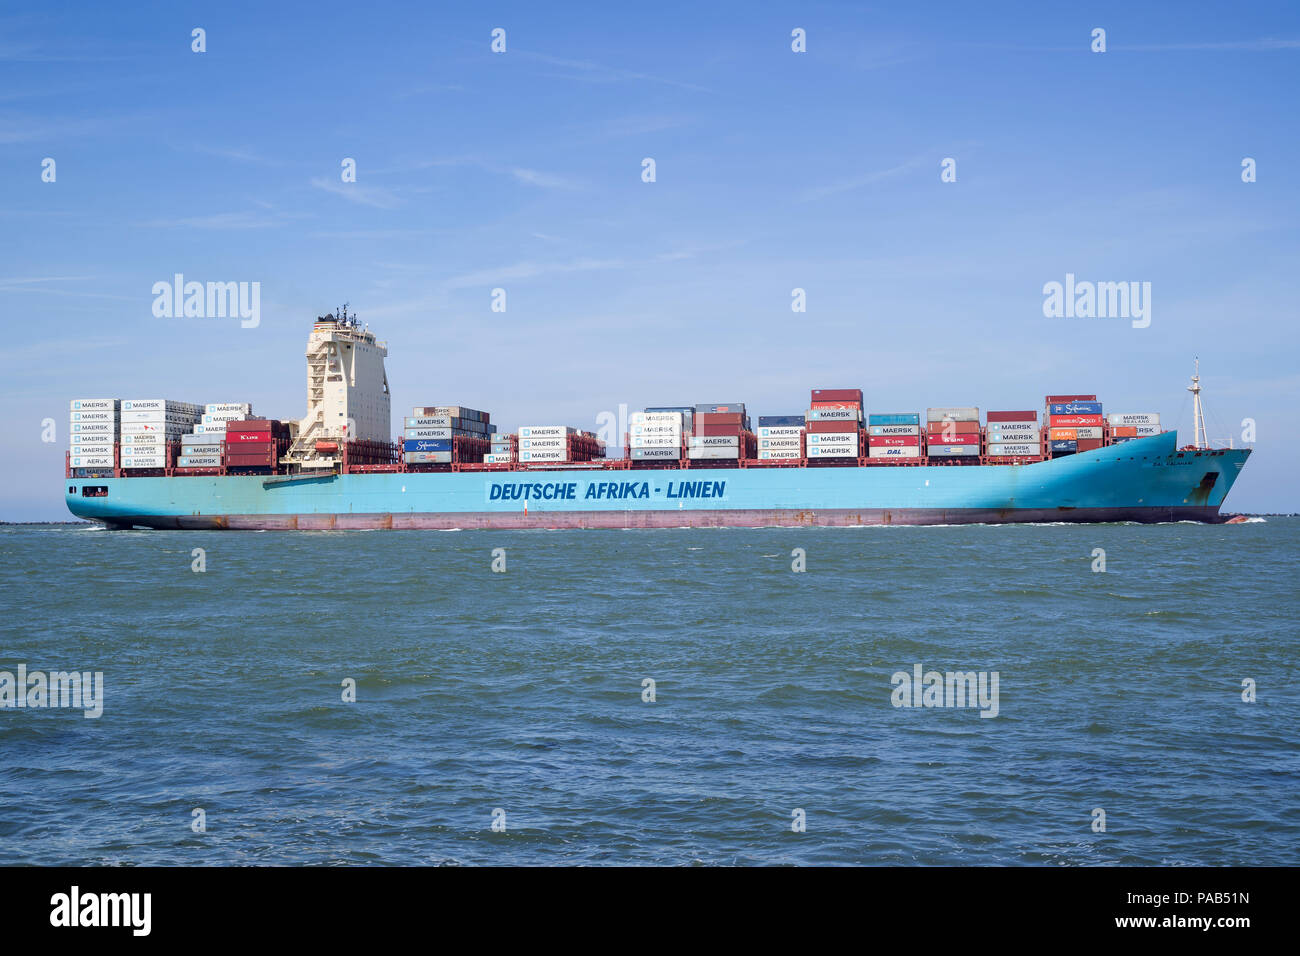 DAL KALAHARI inbound Rotterdam. Deutsche Afrika-Linien operates liner services to Southern Africa, East Africa and the Islands of the Indian Ocean. - Stock Image